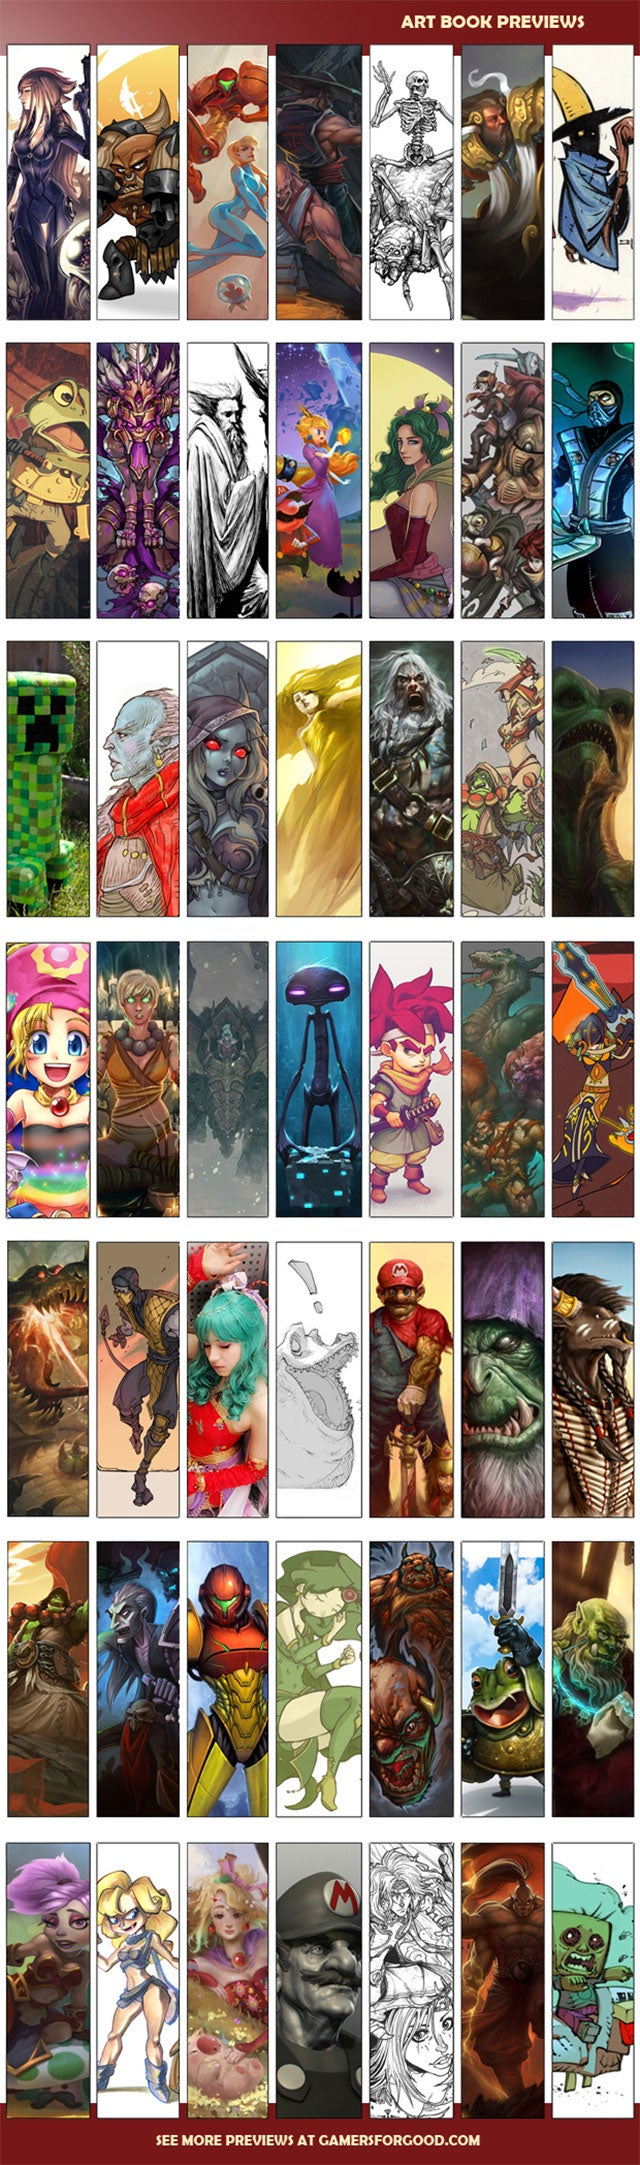 A Video Game Art Book That Also Helps People